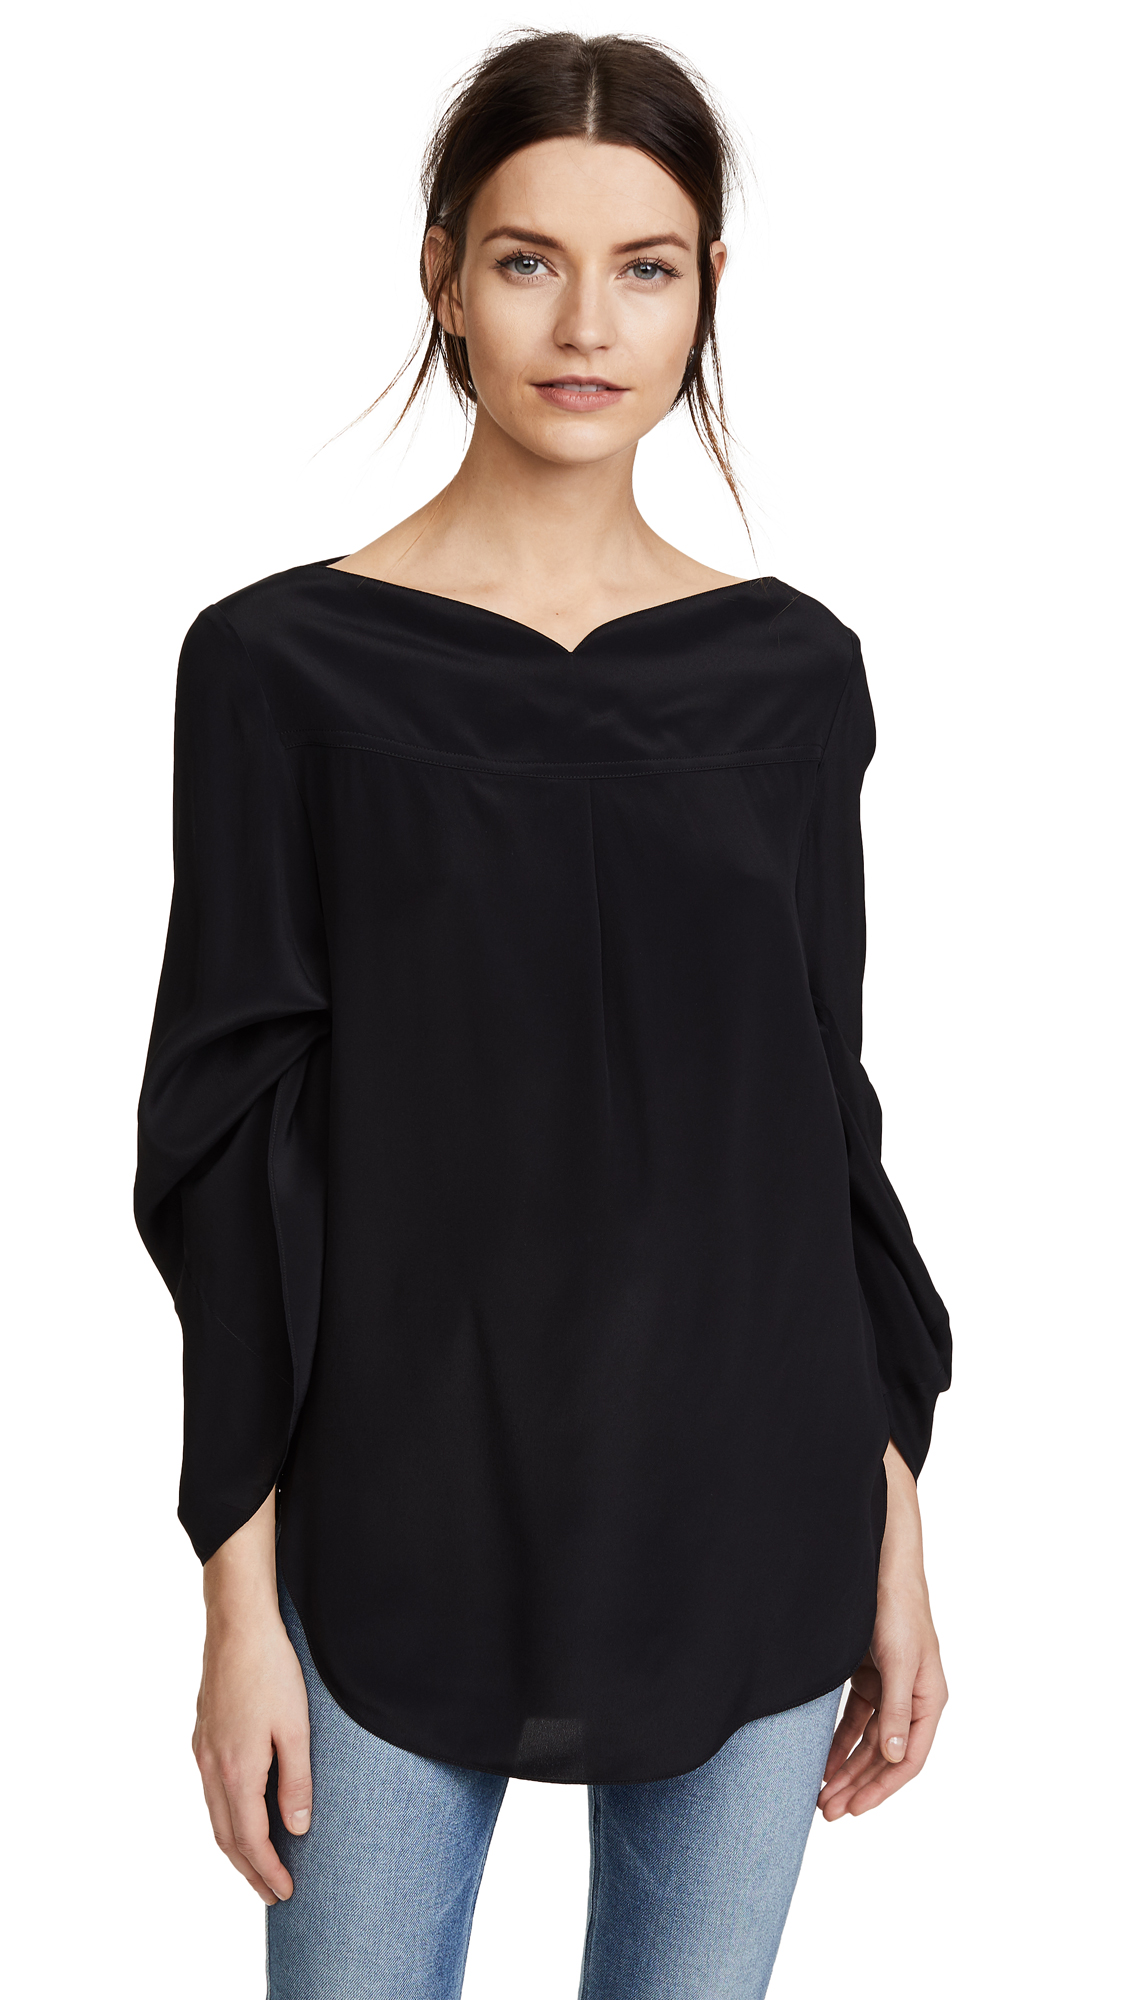 Nina Ricci Boat Neck Blouse with Adjustable Sleeves - Black